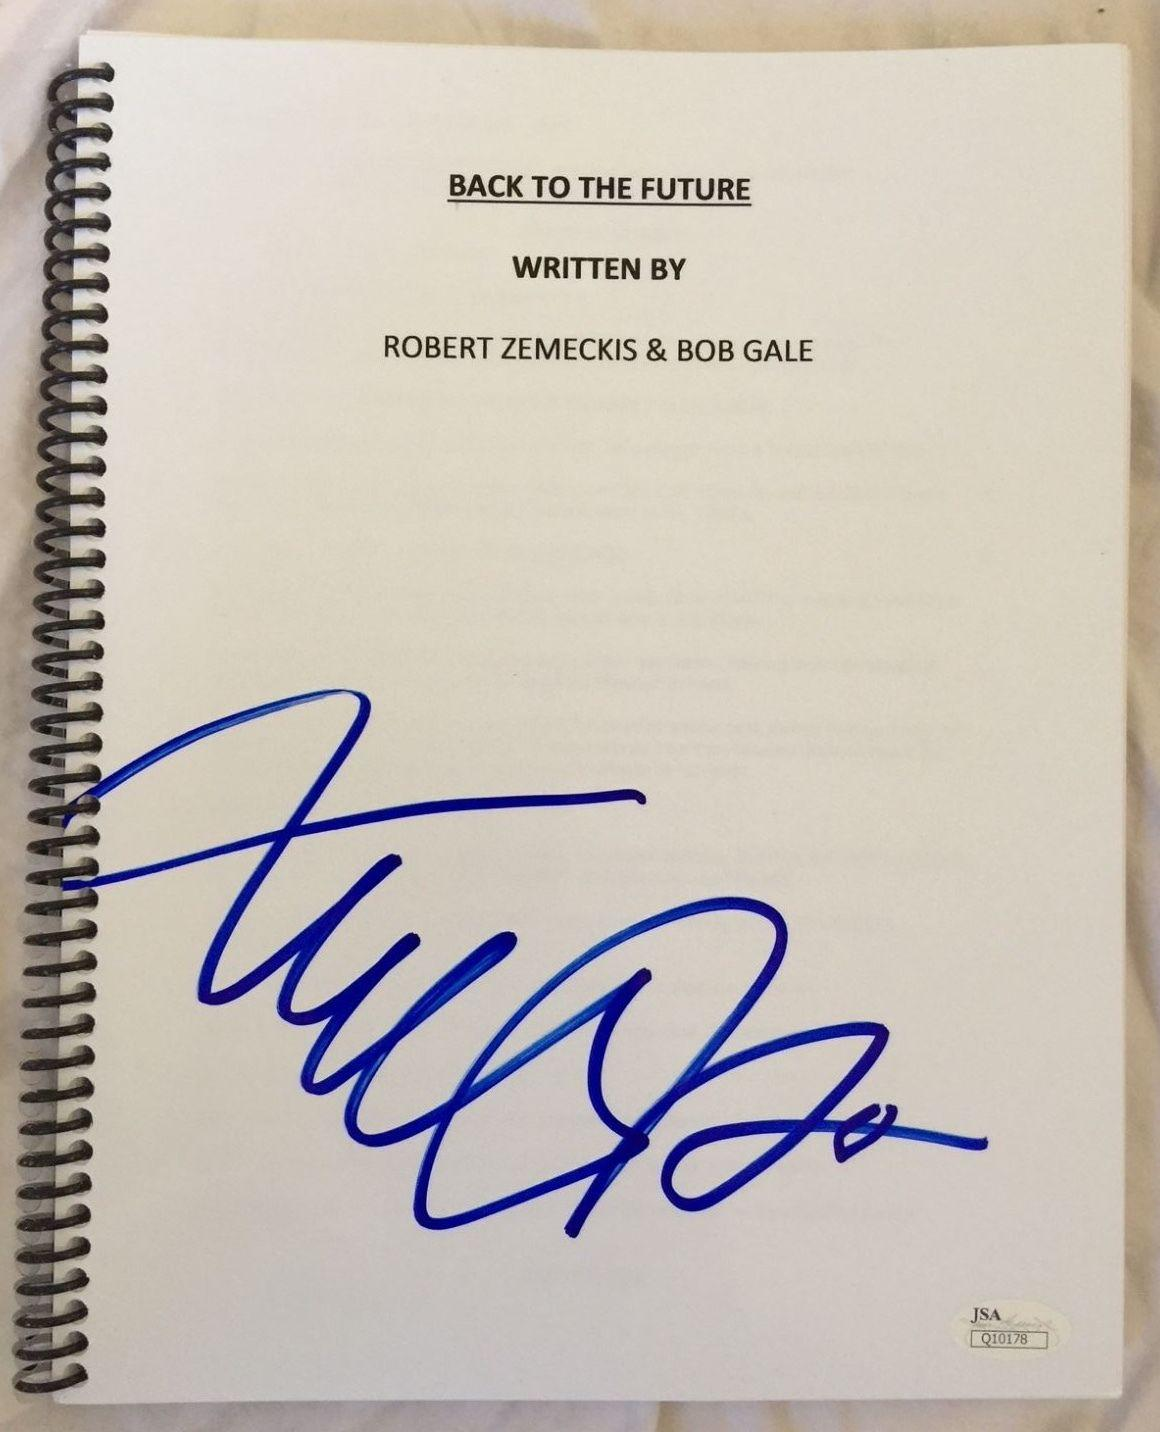 Michael J. Fox Hand Signed Back to the Future Movie Script with JSA COA